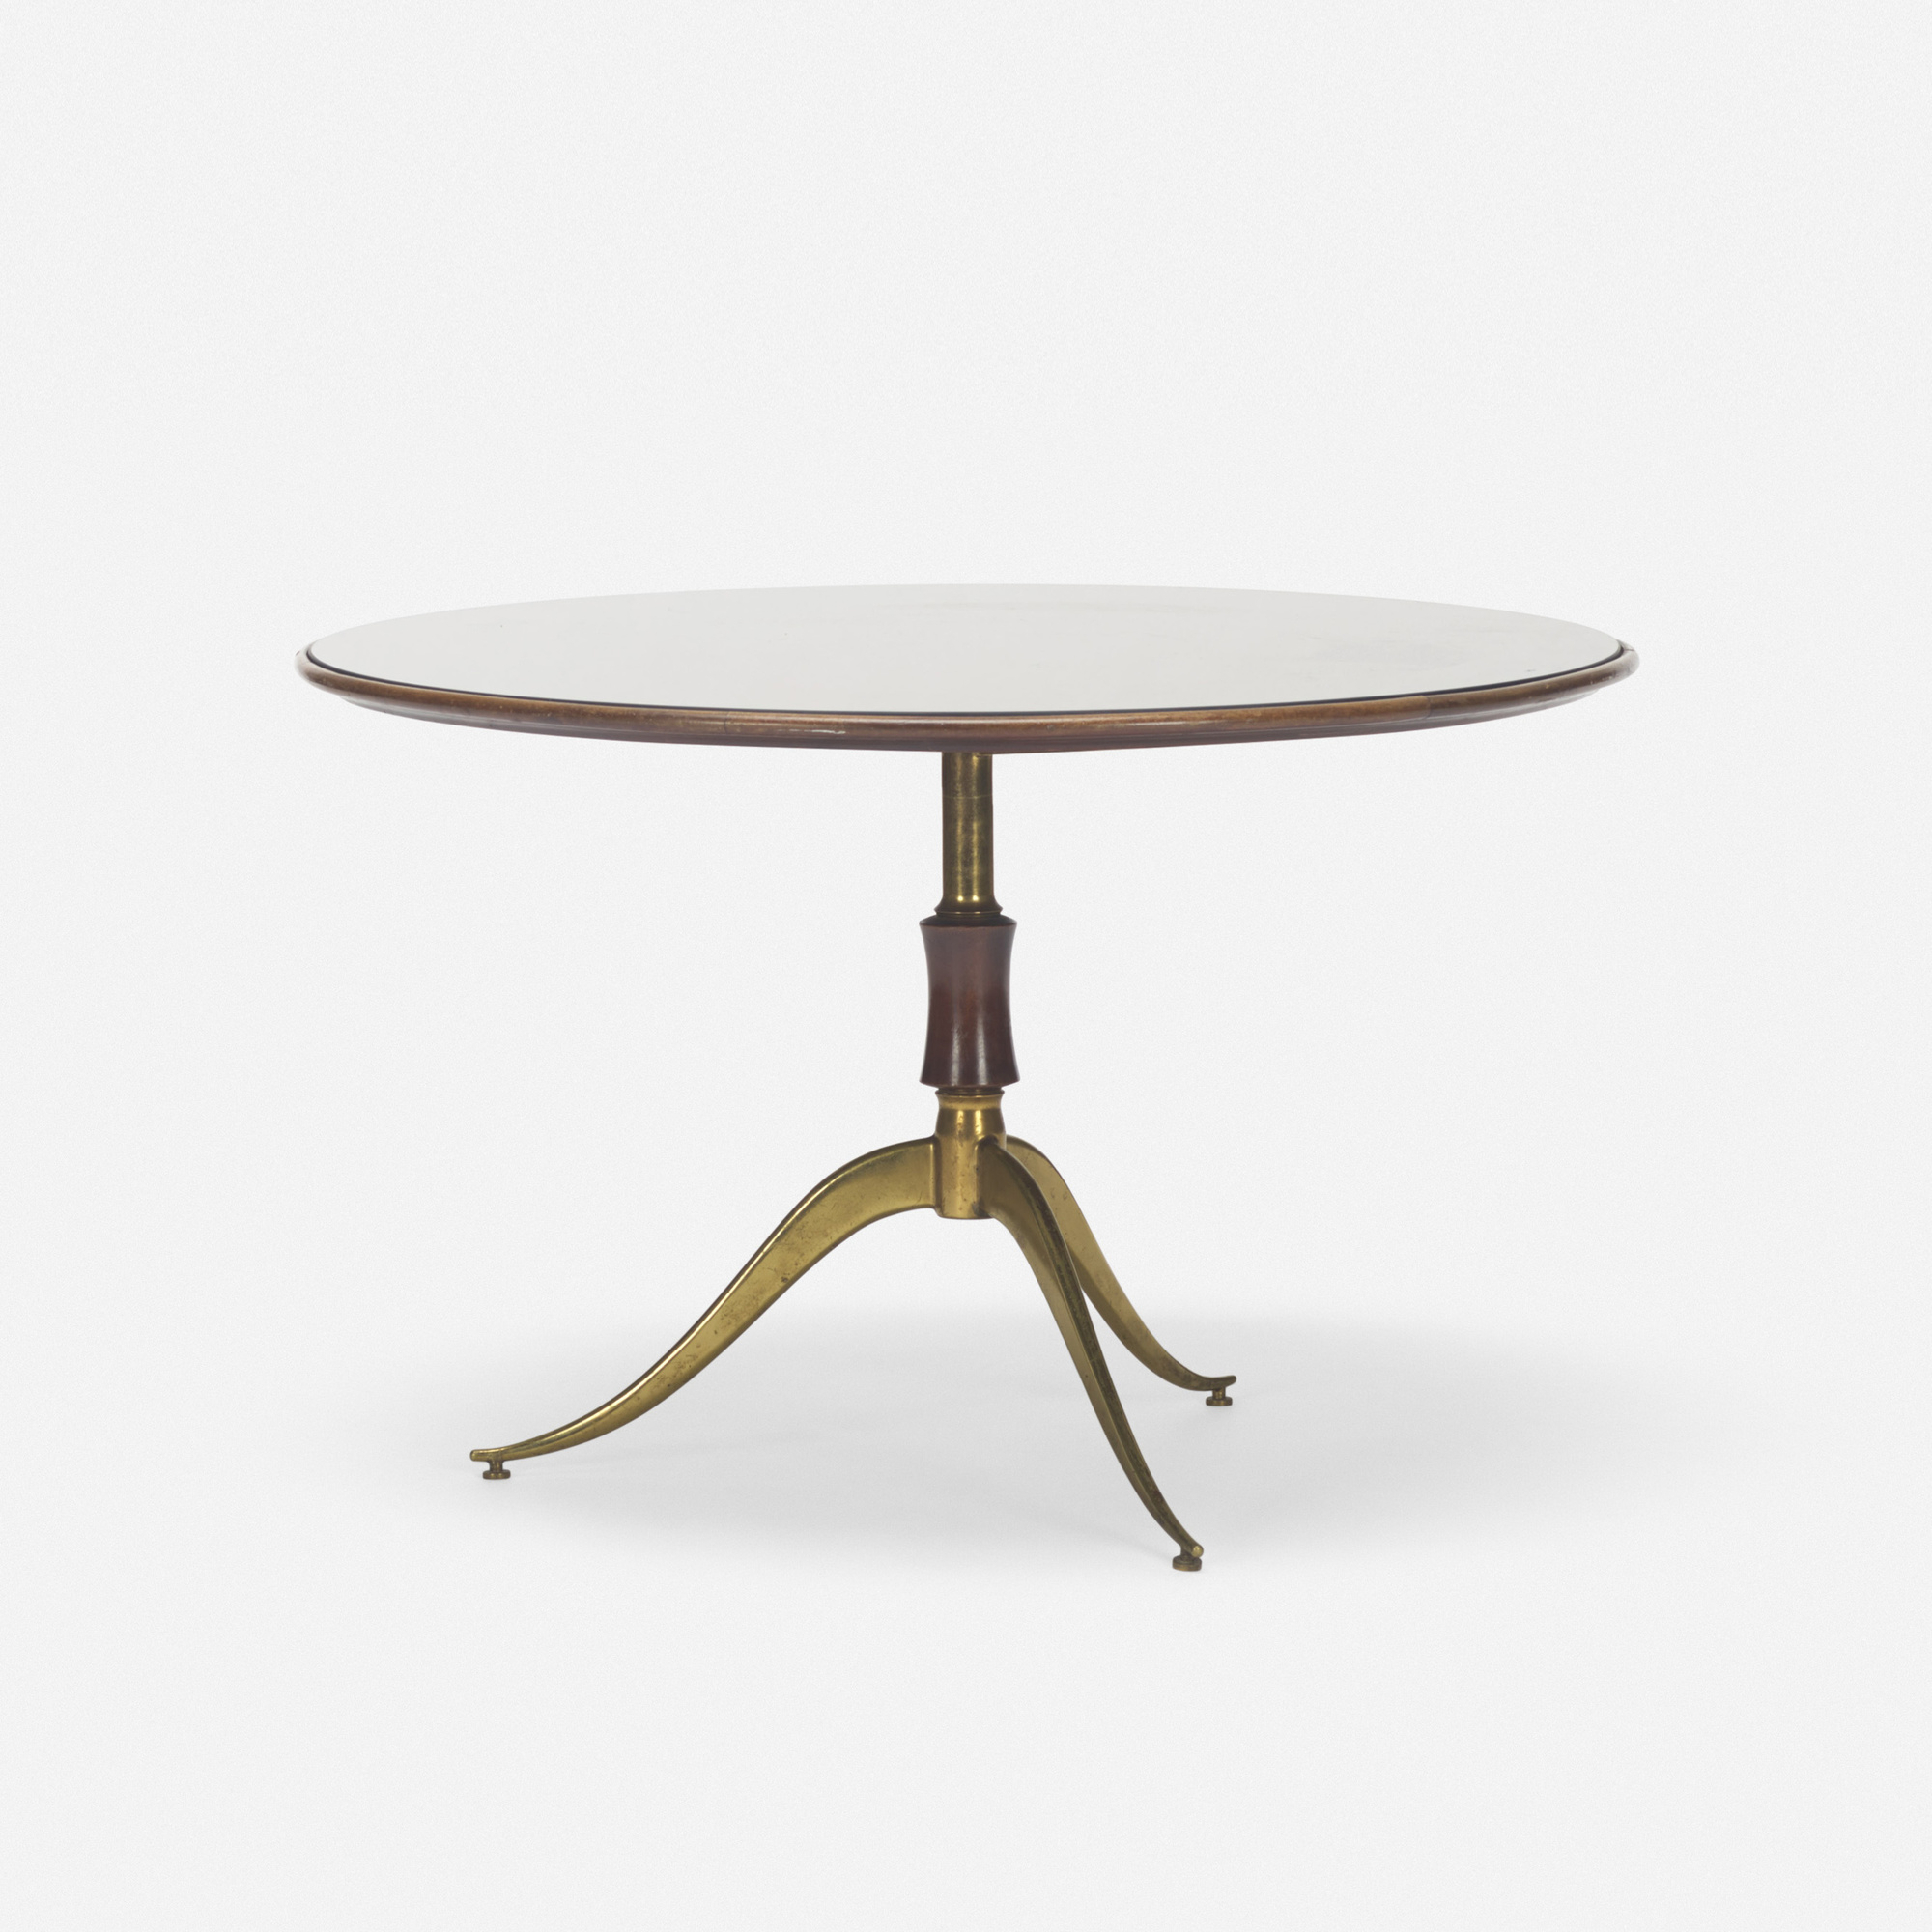 294: Osvaldo Borsani / table (1 of 2)